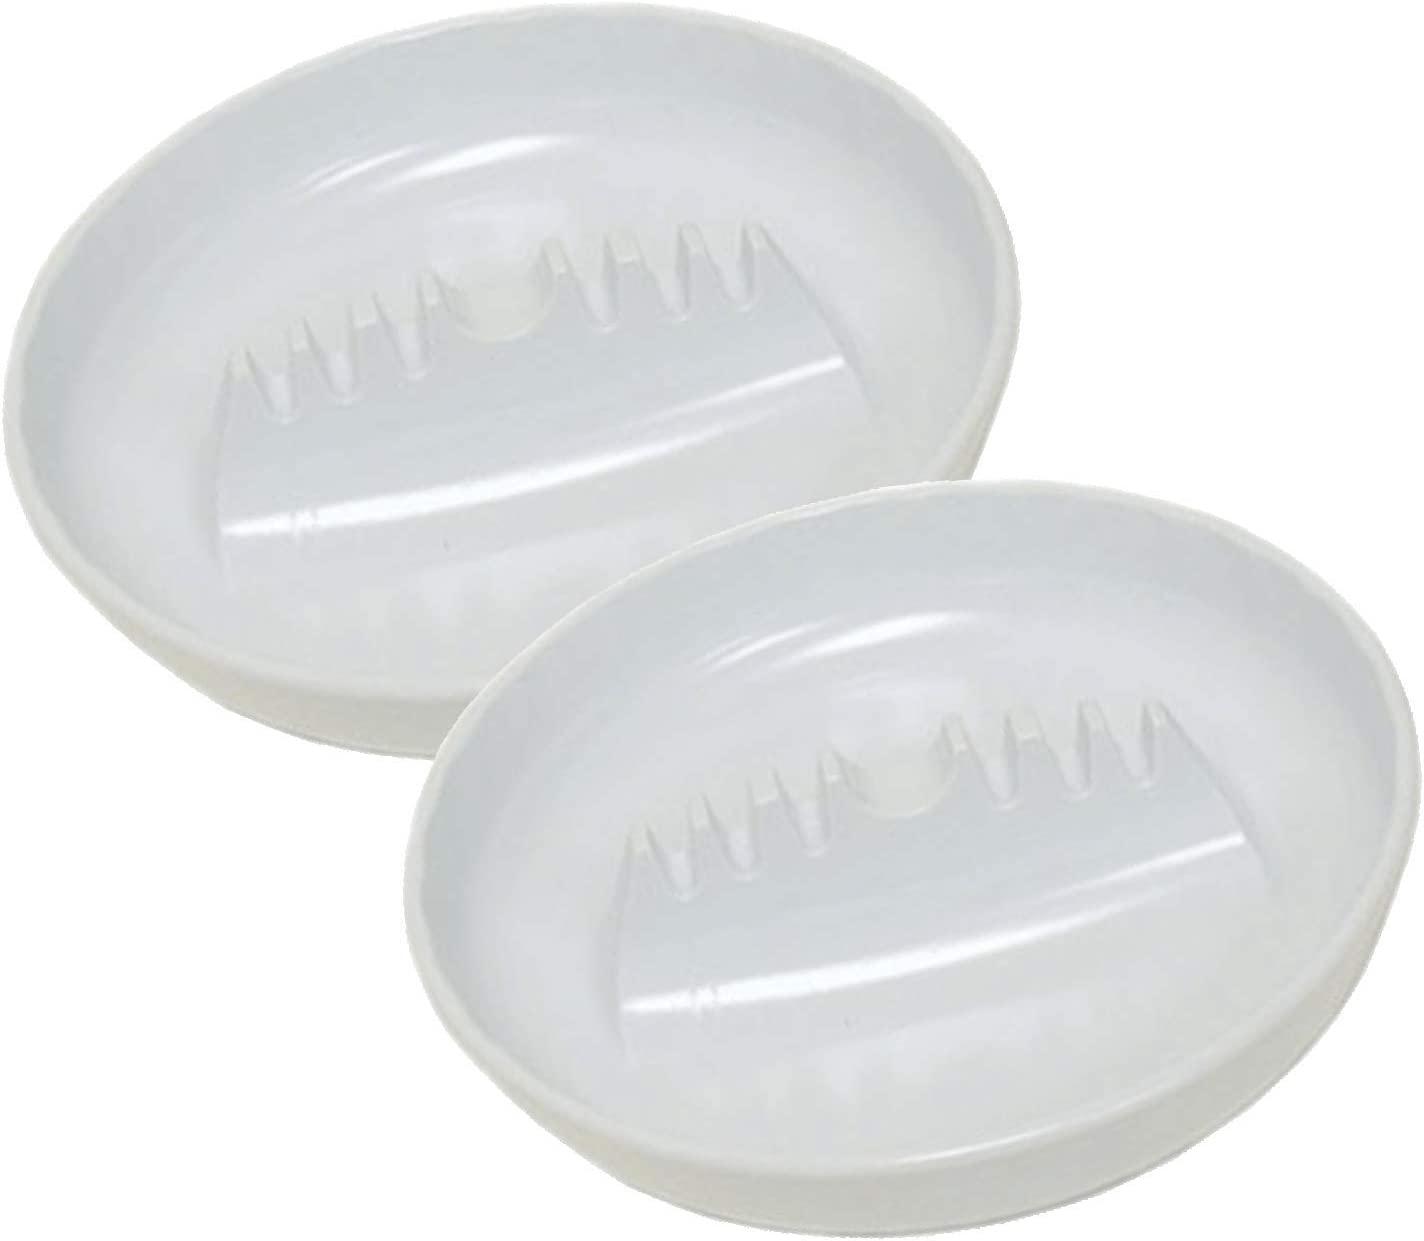 "Nitmoi Products White Plastic Ashtray Cigarette Cigar Home Office Patio Restaurant Large (2 Pack) 7"" Diameter 1.25"" Height Ashtray 6 Cigarette Rests 1 Cigar Rest Premium Quality Ashtray"